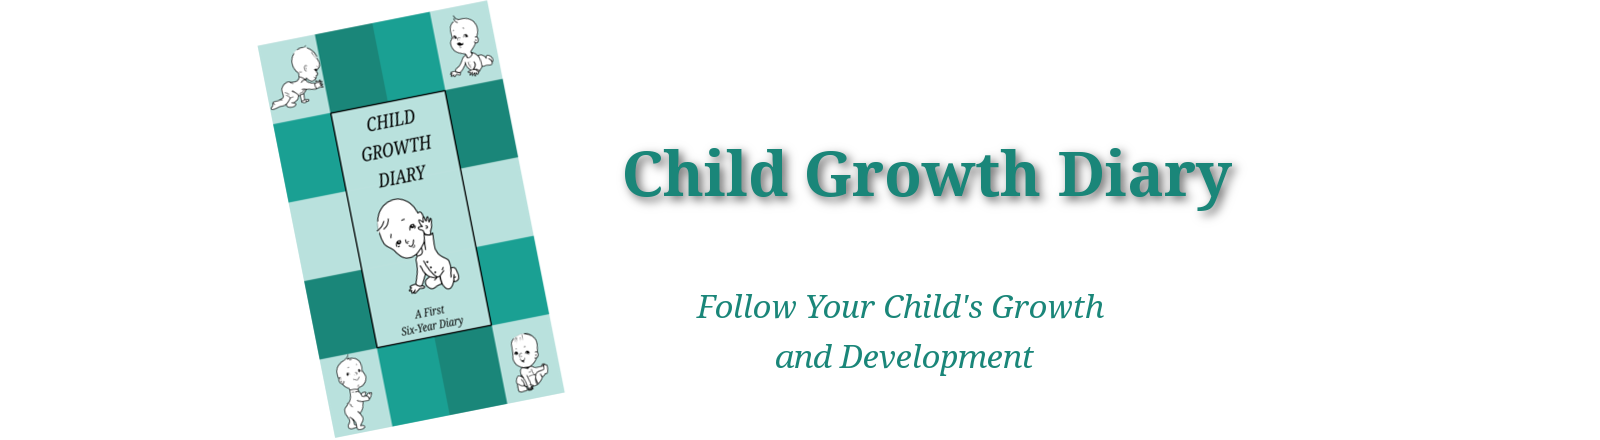 Child Growth Diary